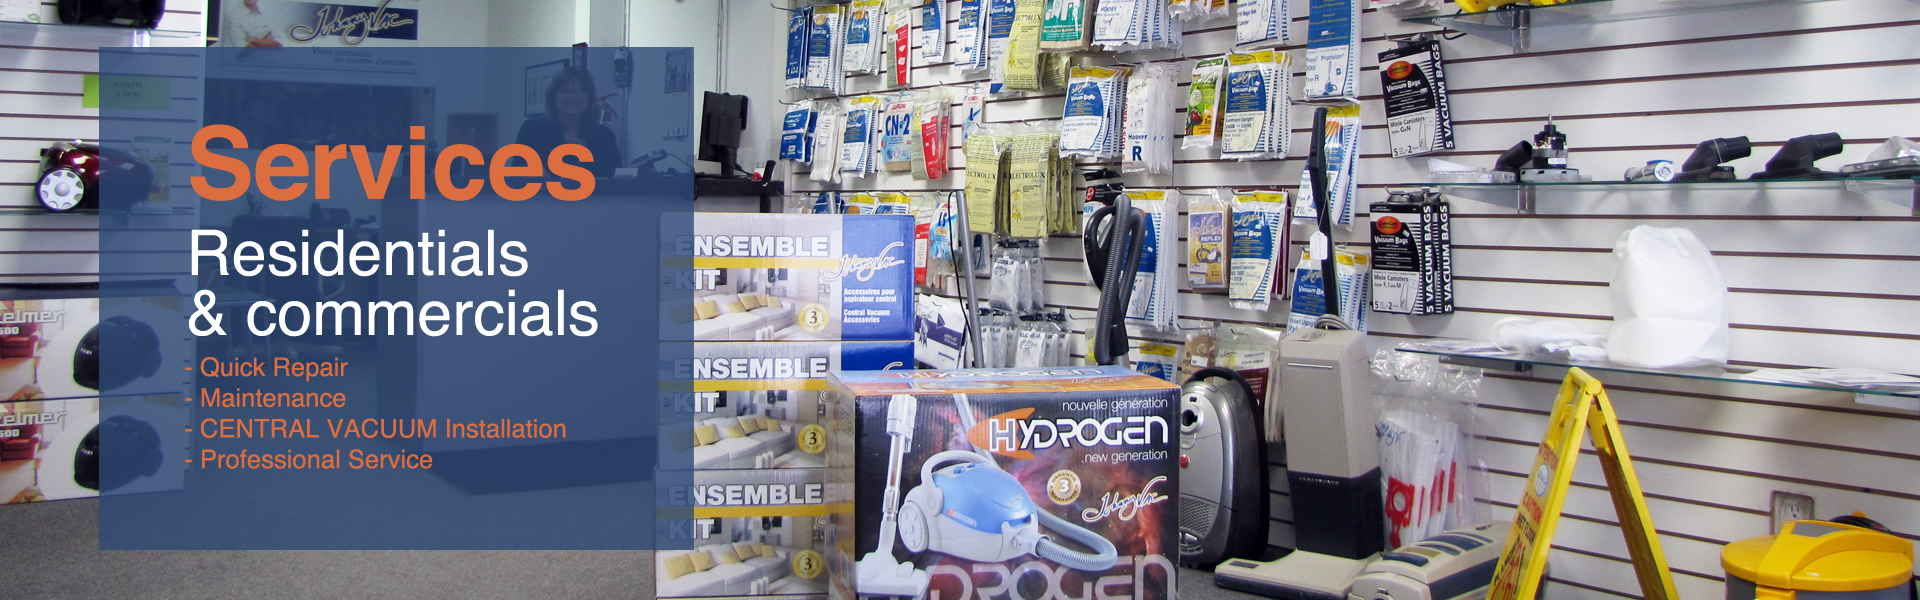 aspirateurs-samson-sales-repair-residential-commercial-central-vacuum-cleaner-1920x600-002